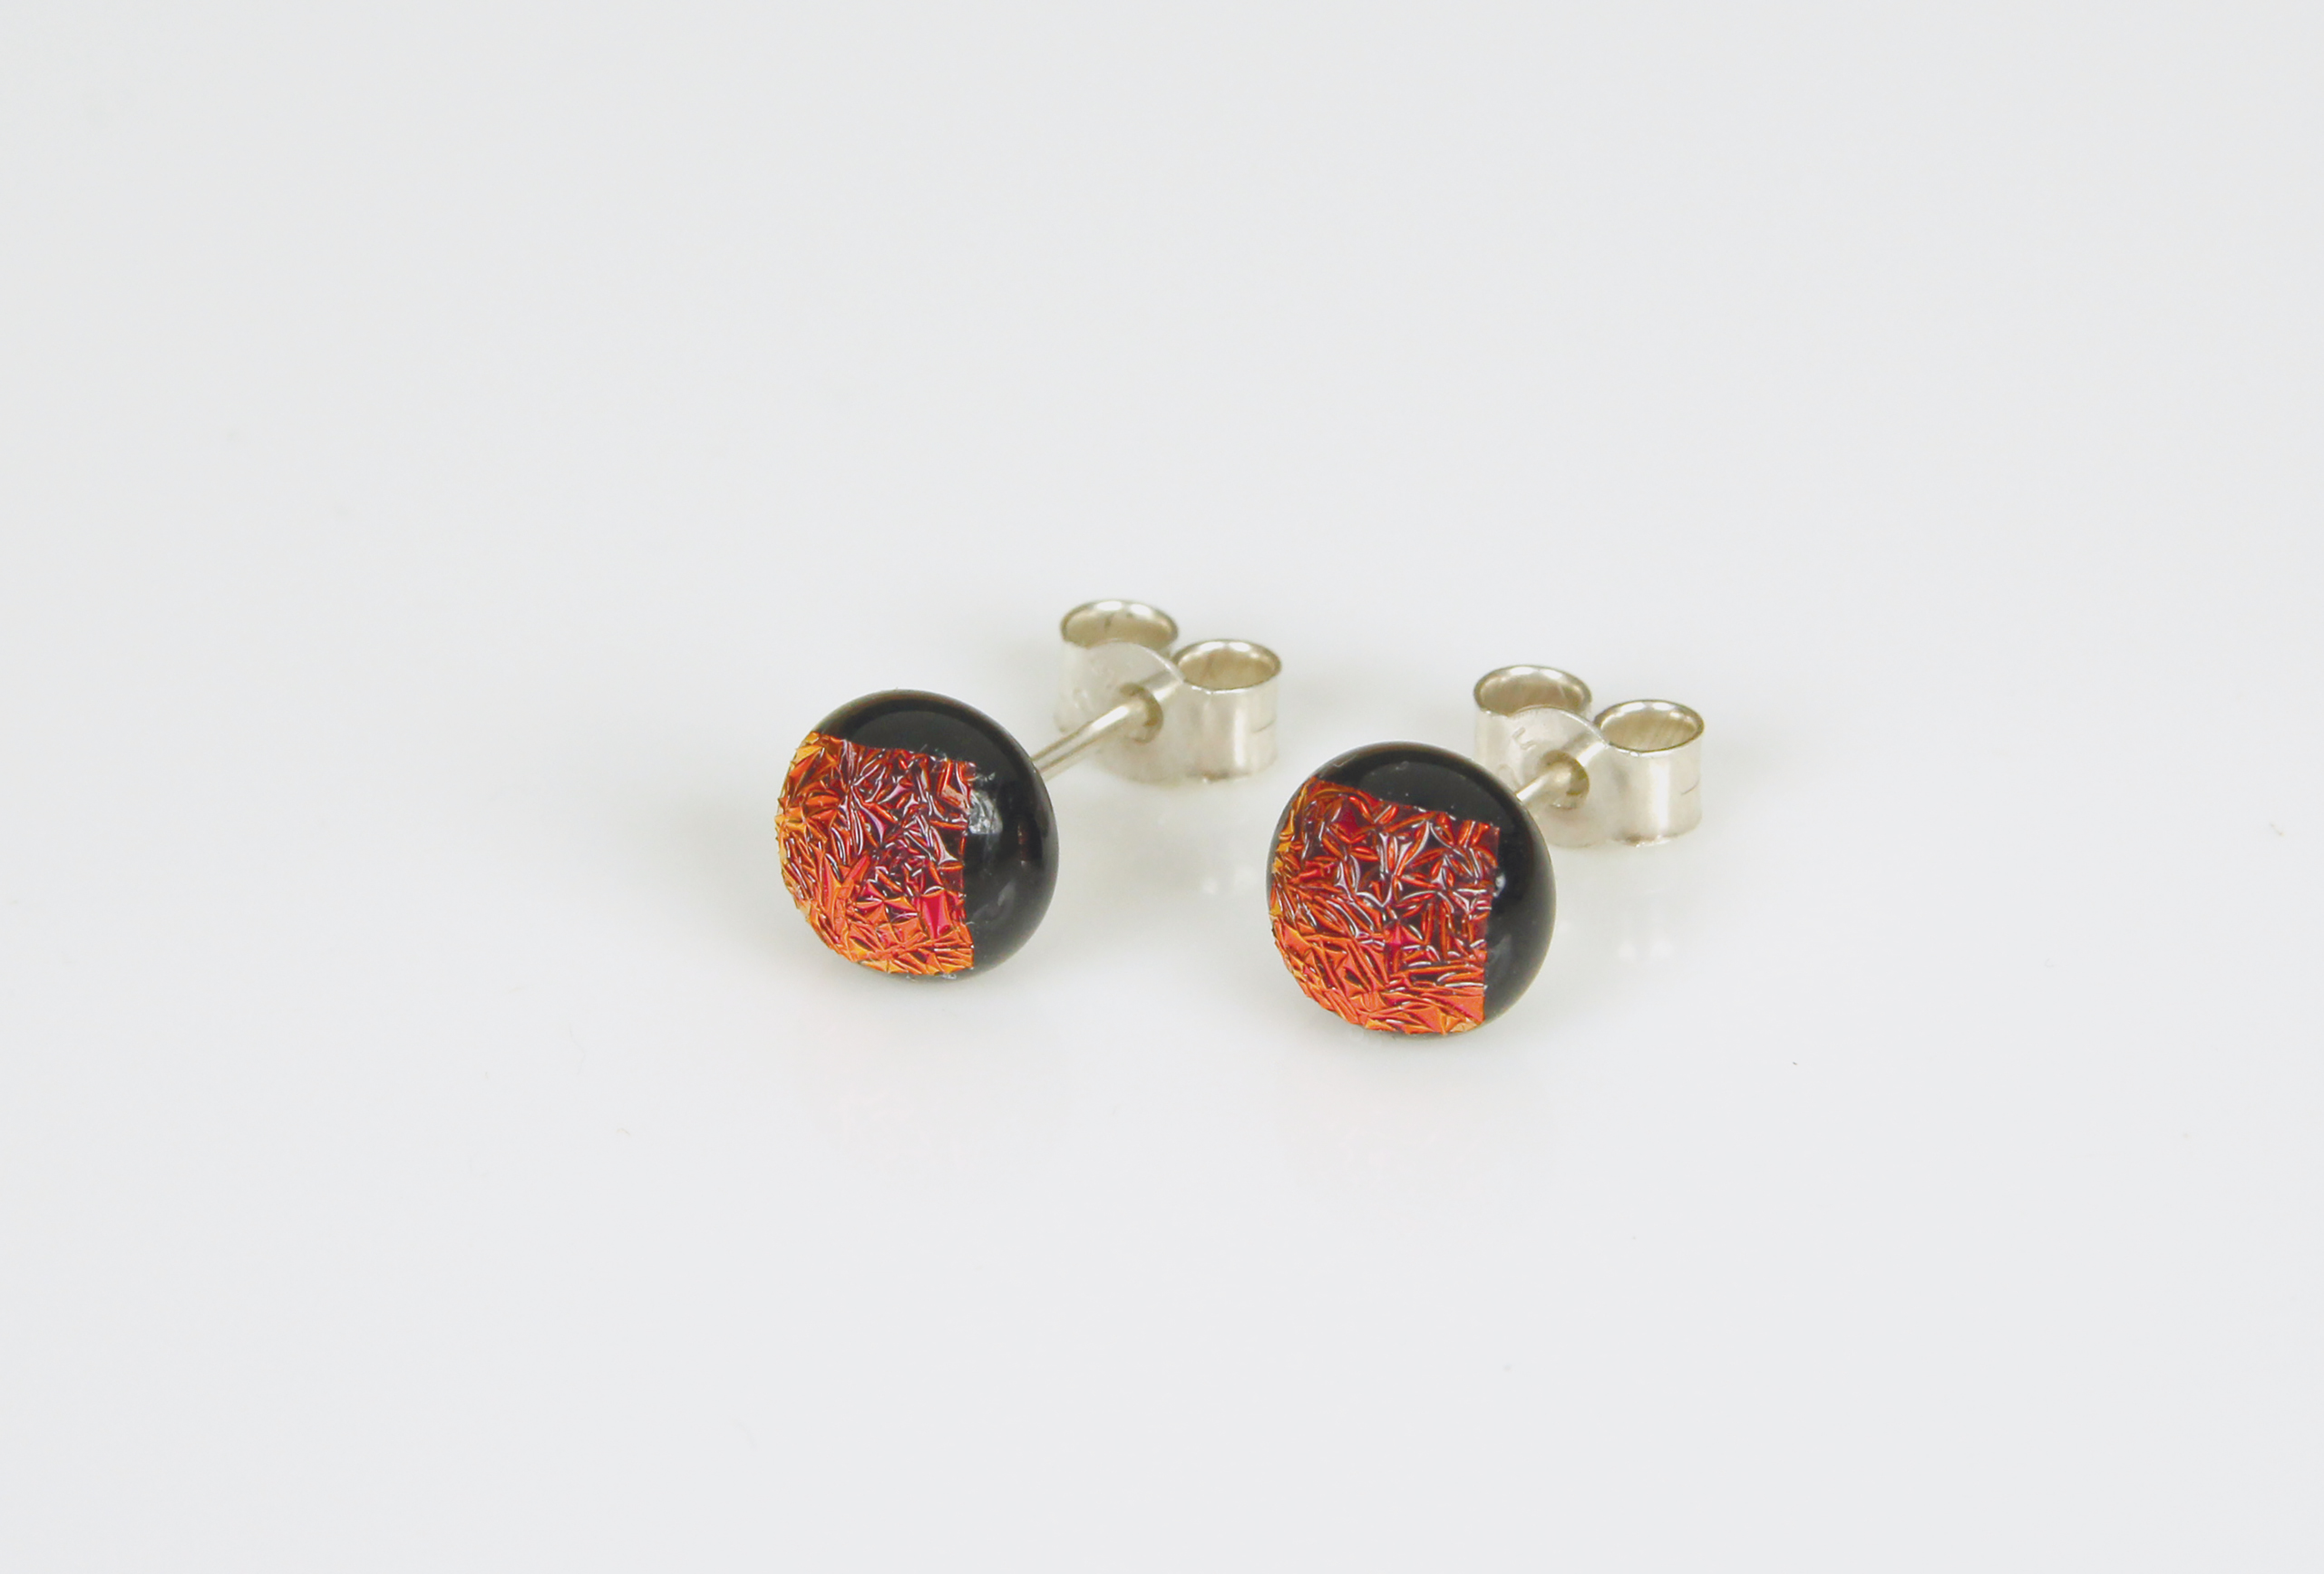 Dichroic glass jewellery uk, handmade stud earrings with copper red dichroic glass, round, sterling glass 7mm, silver posts.